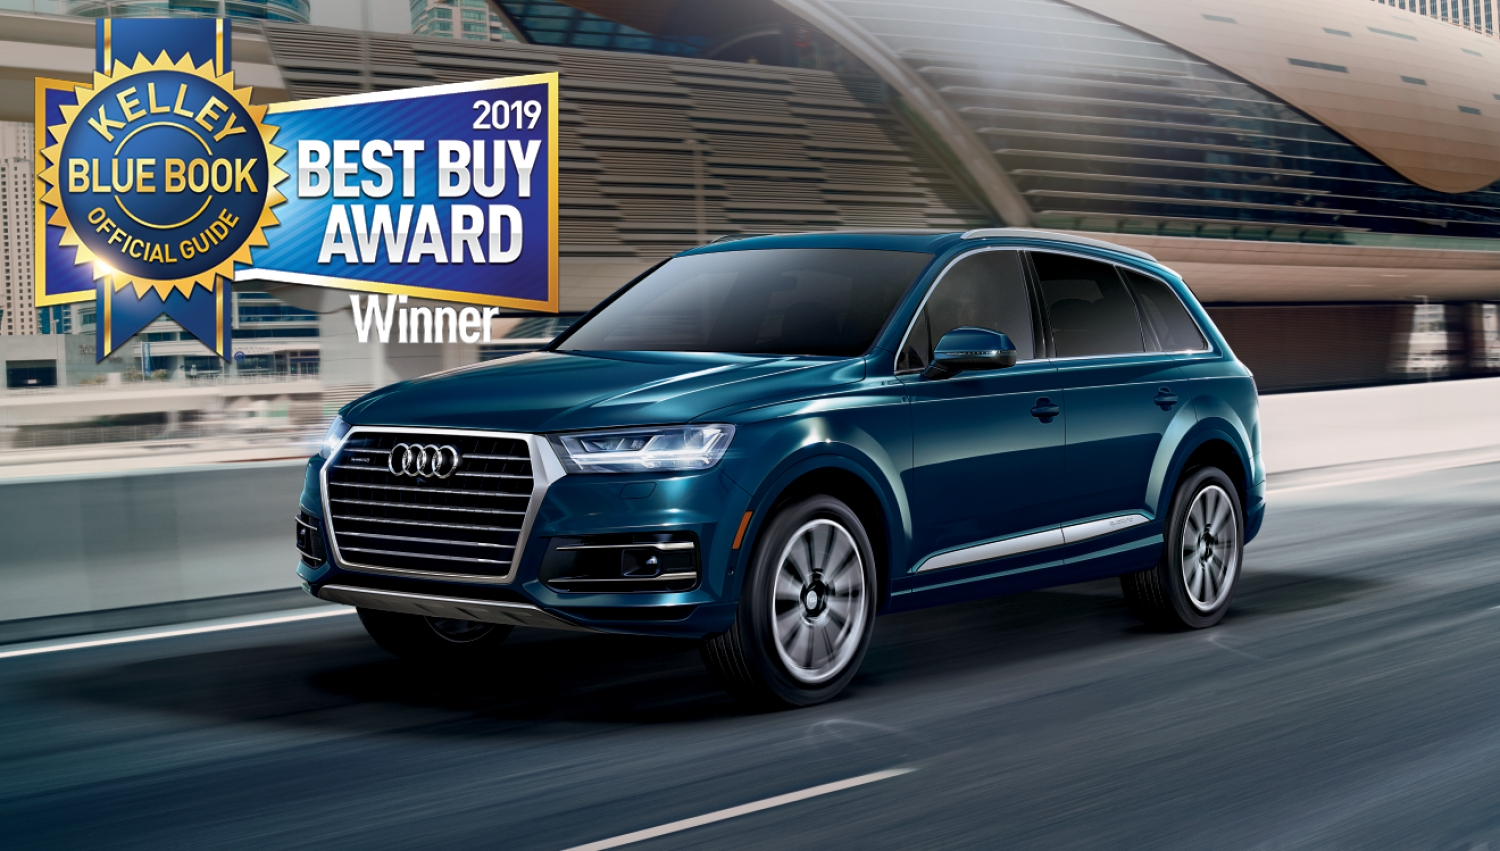 2019 Audi Q7 named KBB Best Buy in Midsize Luxury SUV category